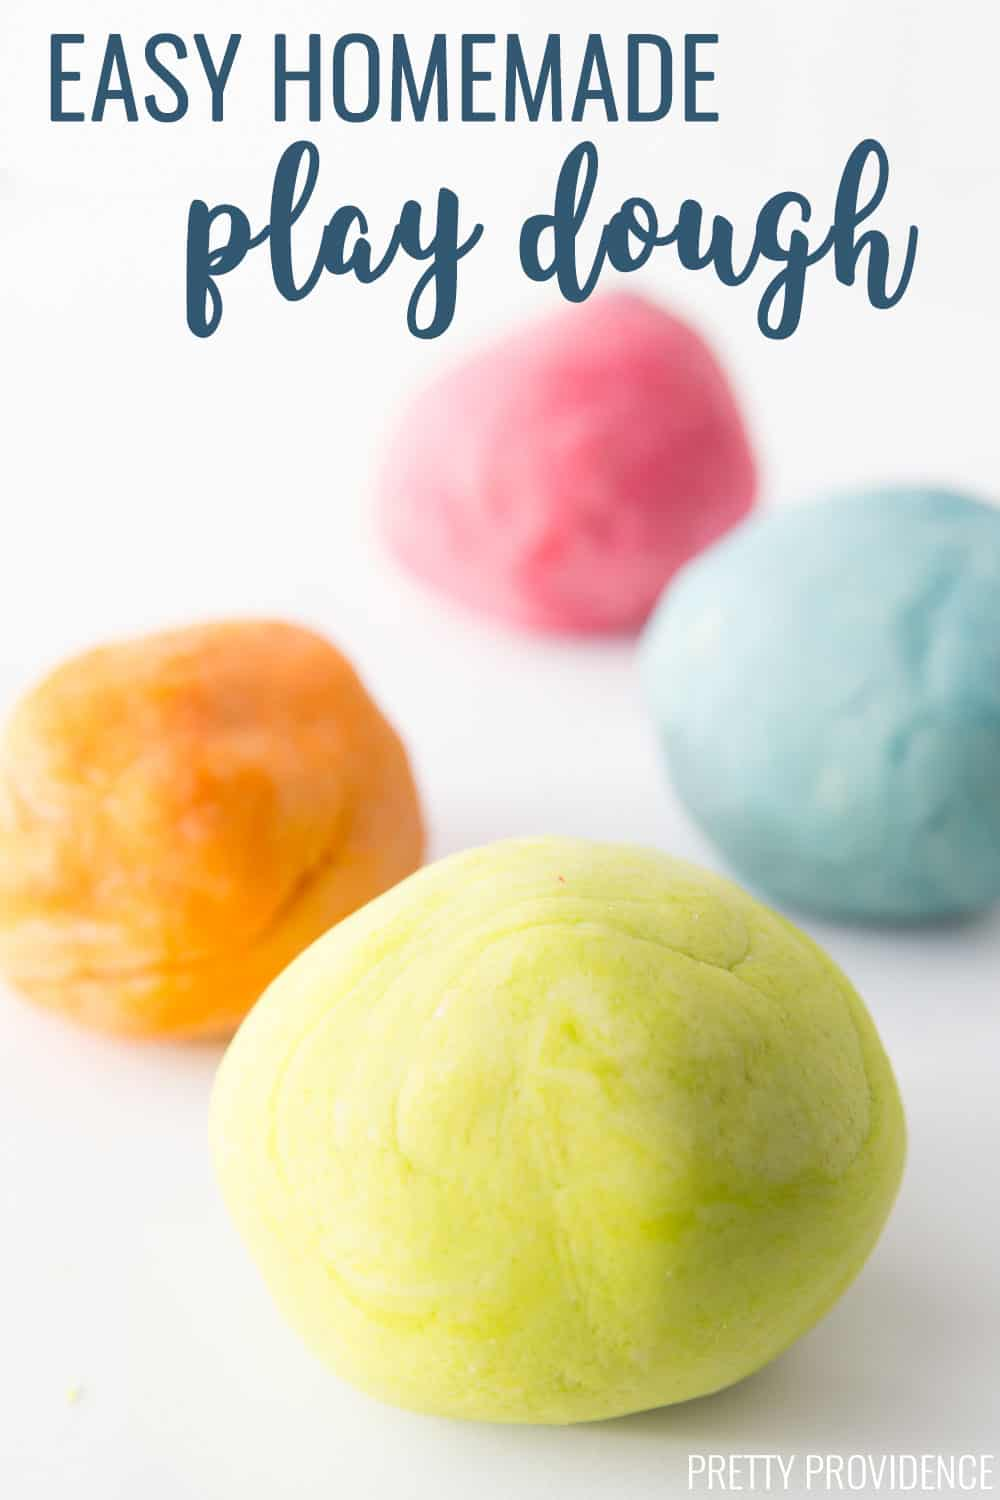 This easy play dough recipe is the best and it lasts a long time! So fun for kids!